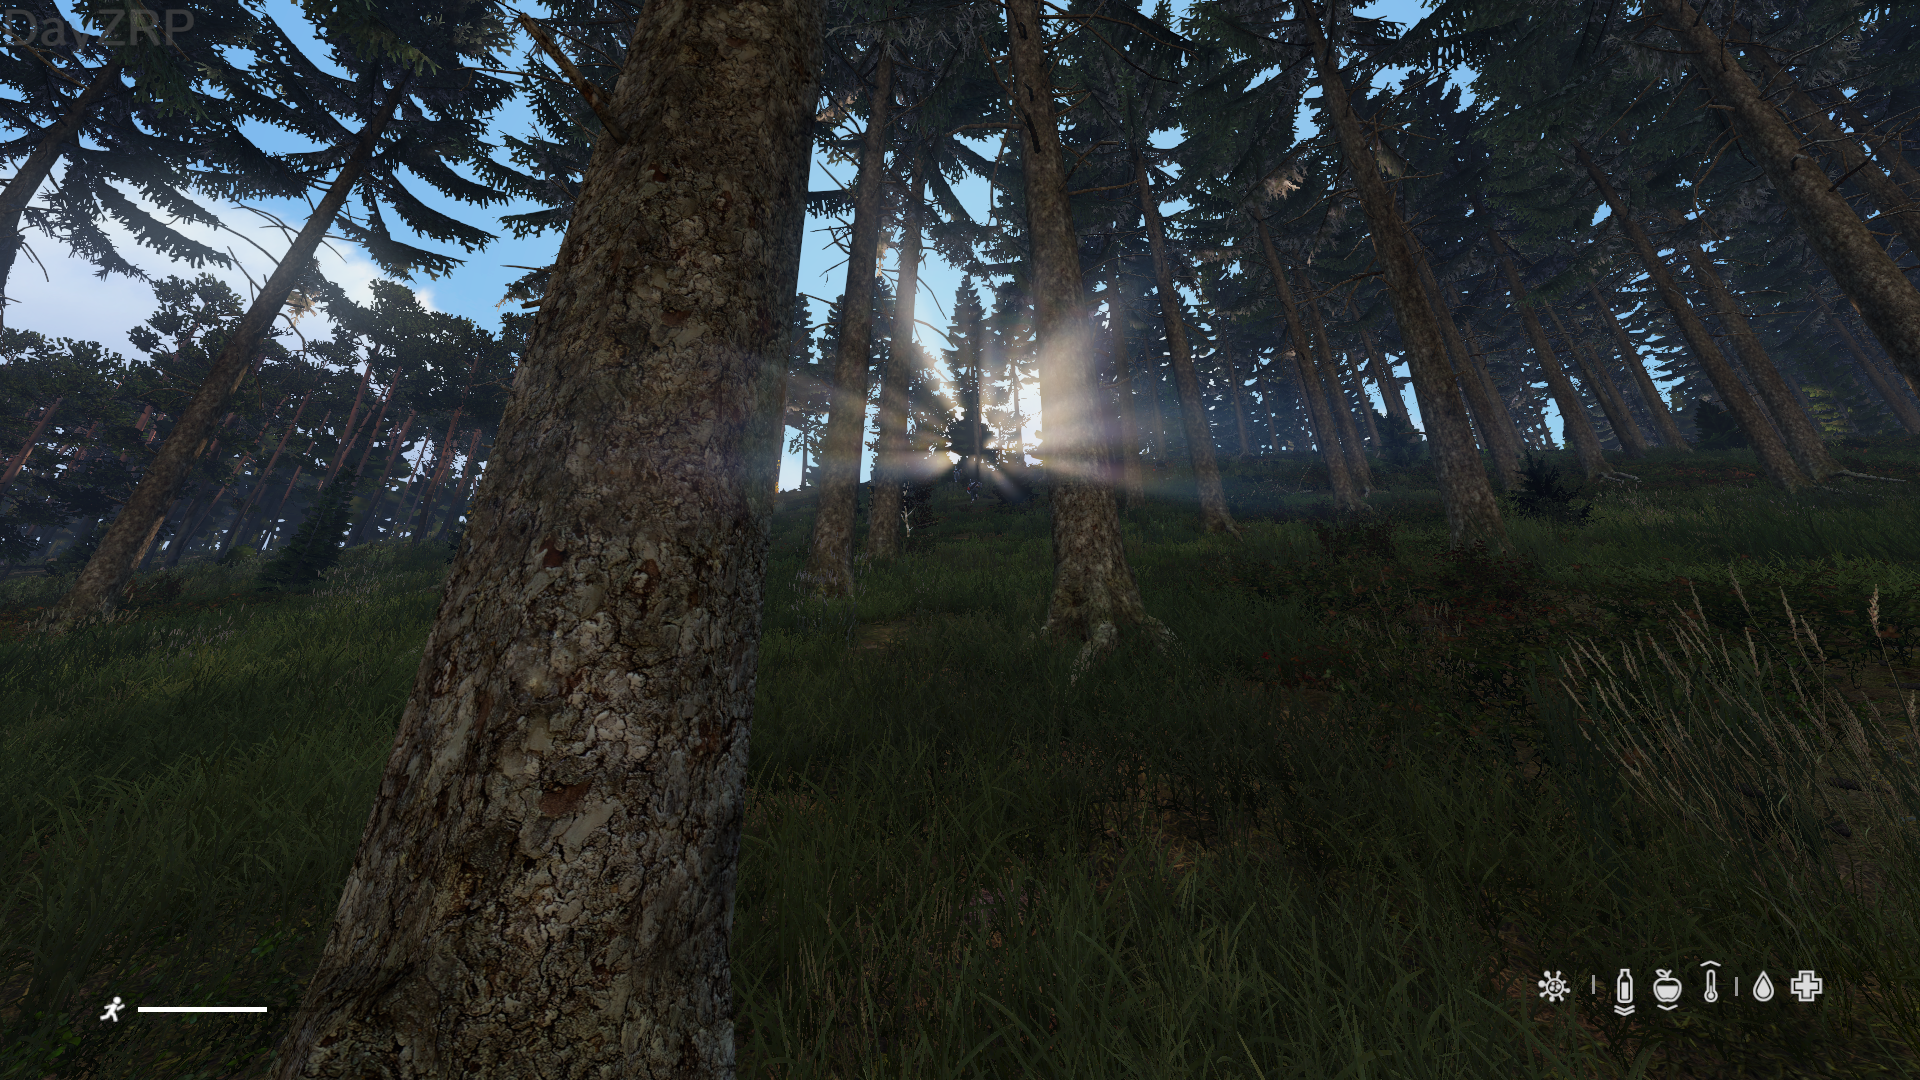 DayZ_Screenshot_2019_03.13_-_19_39_15_40.png.17f8bfb2336e5a9d2cd897022f7fe690.png